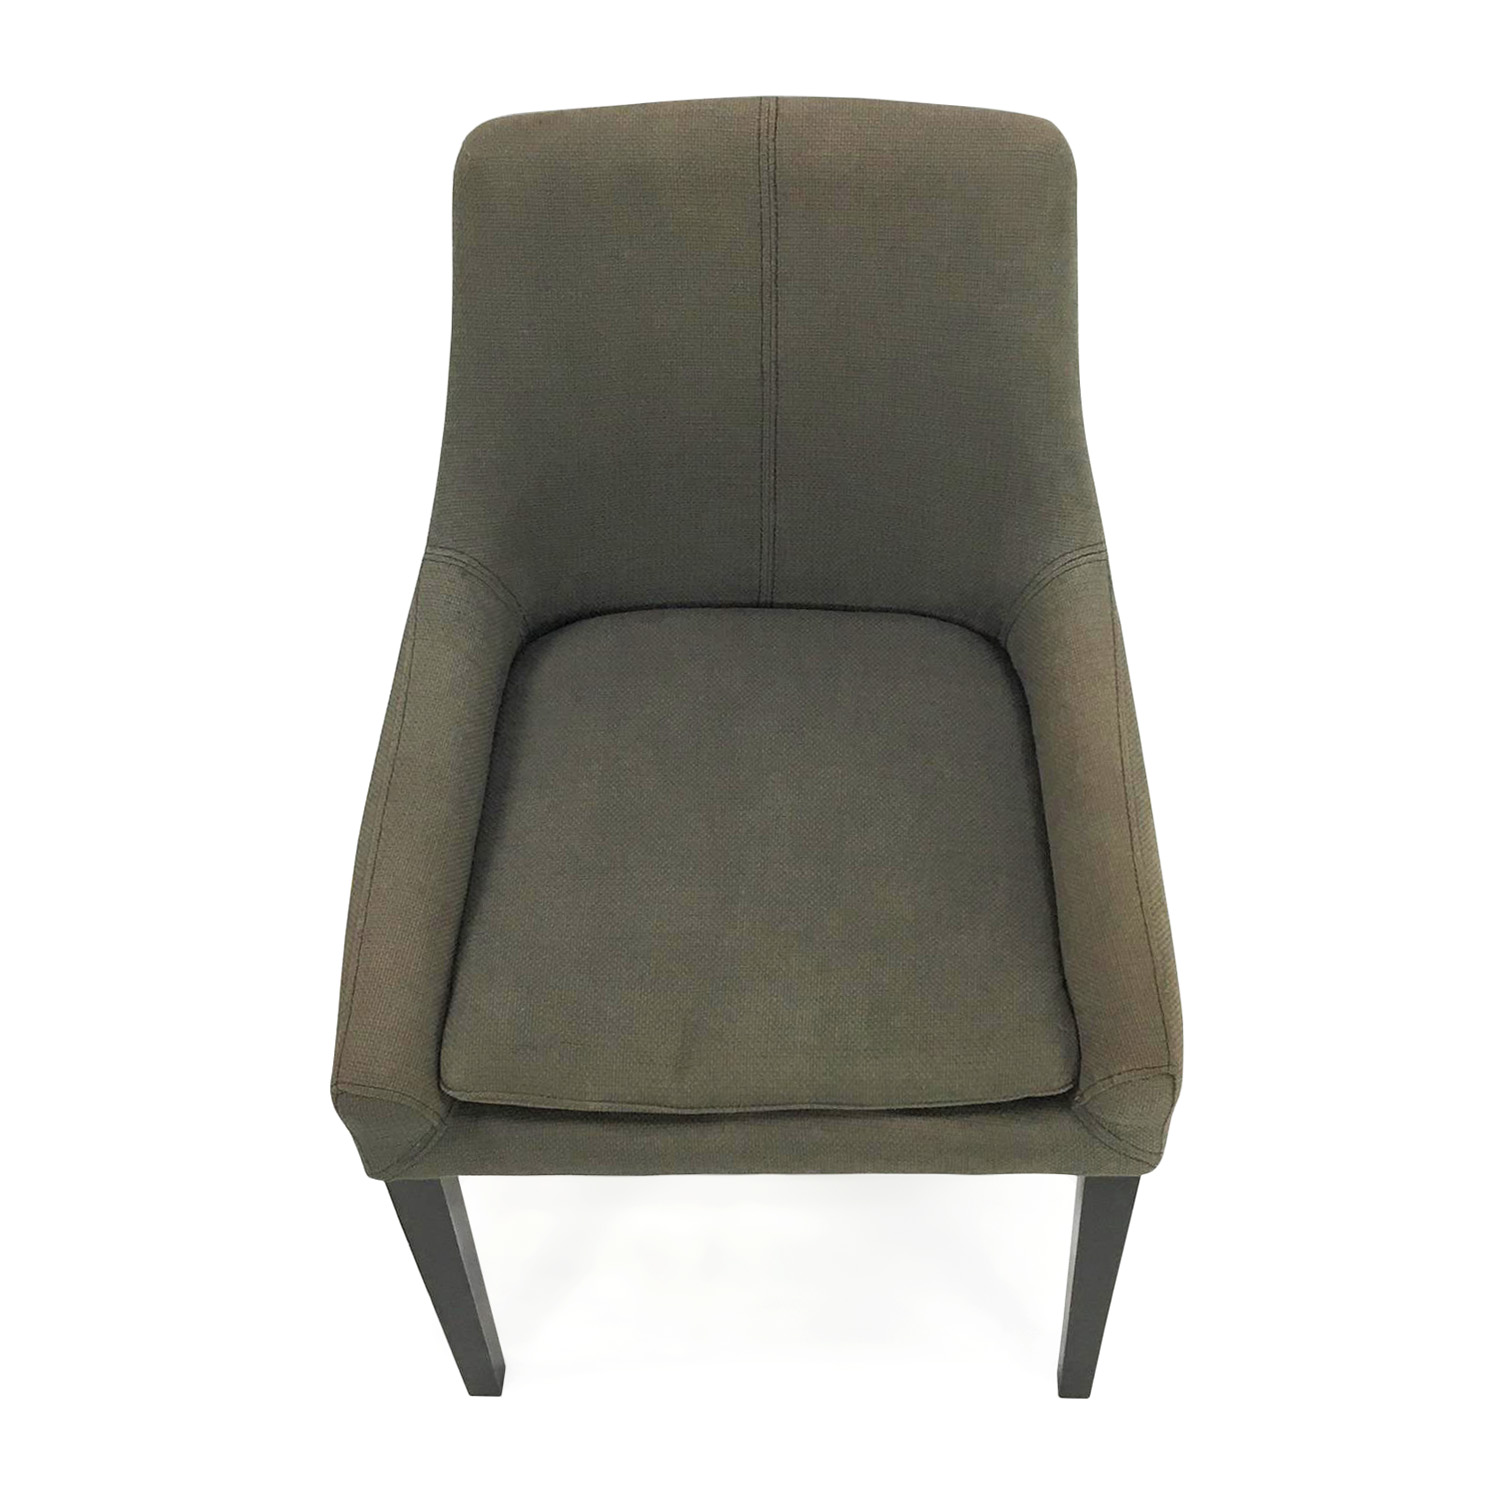 West Elm West Elm Pewter Chair nj